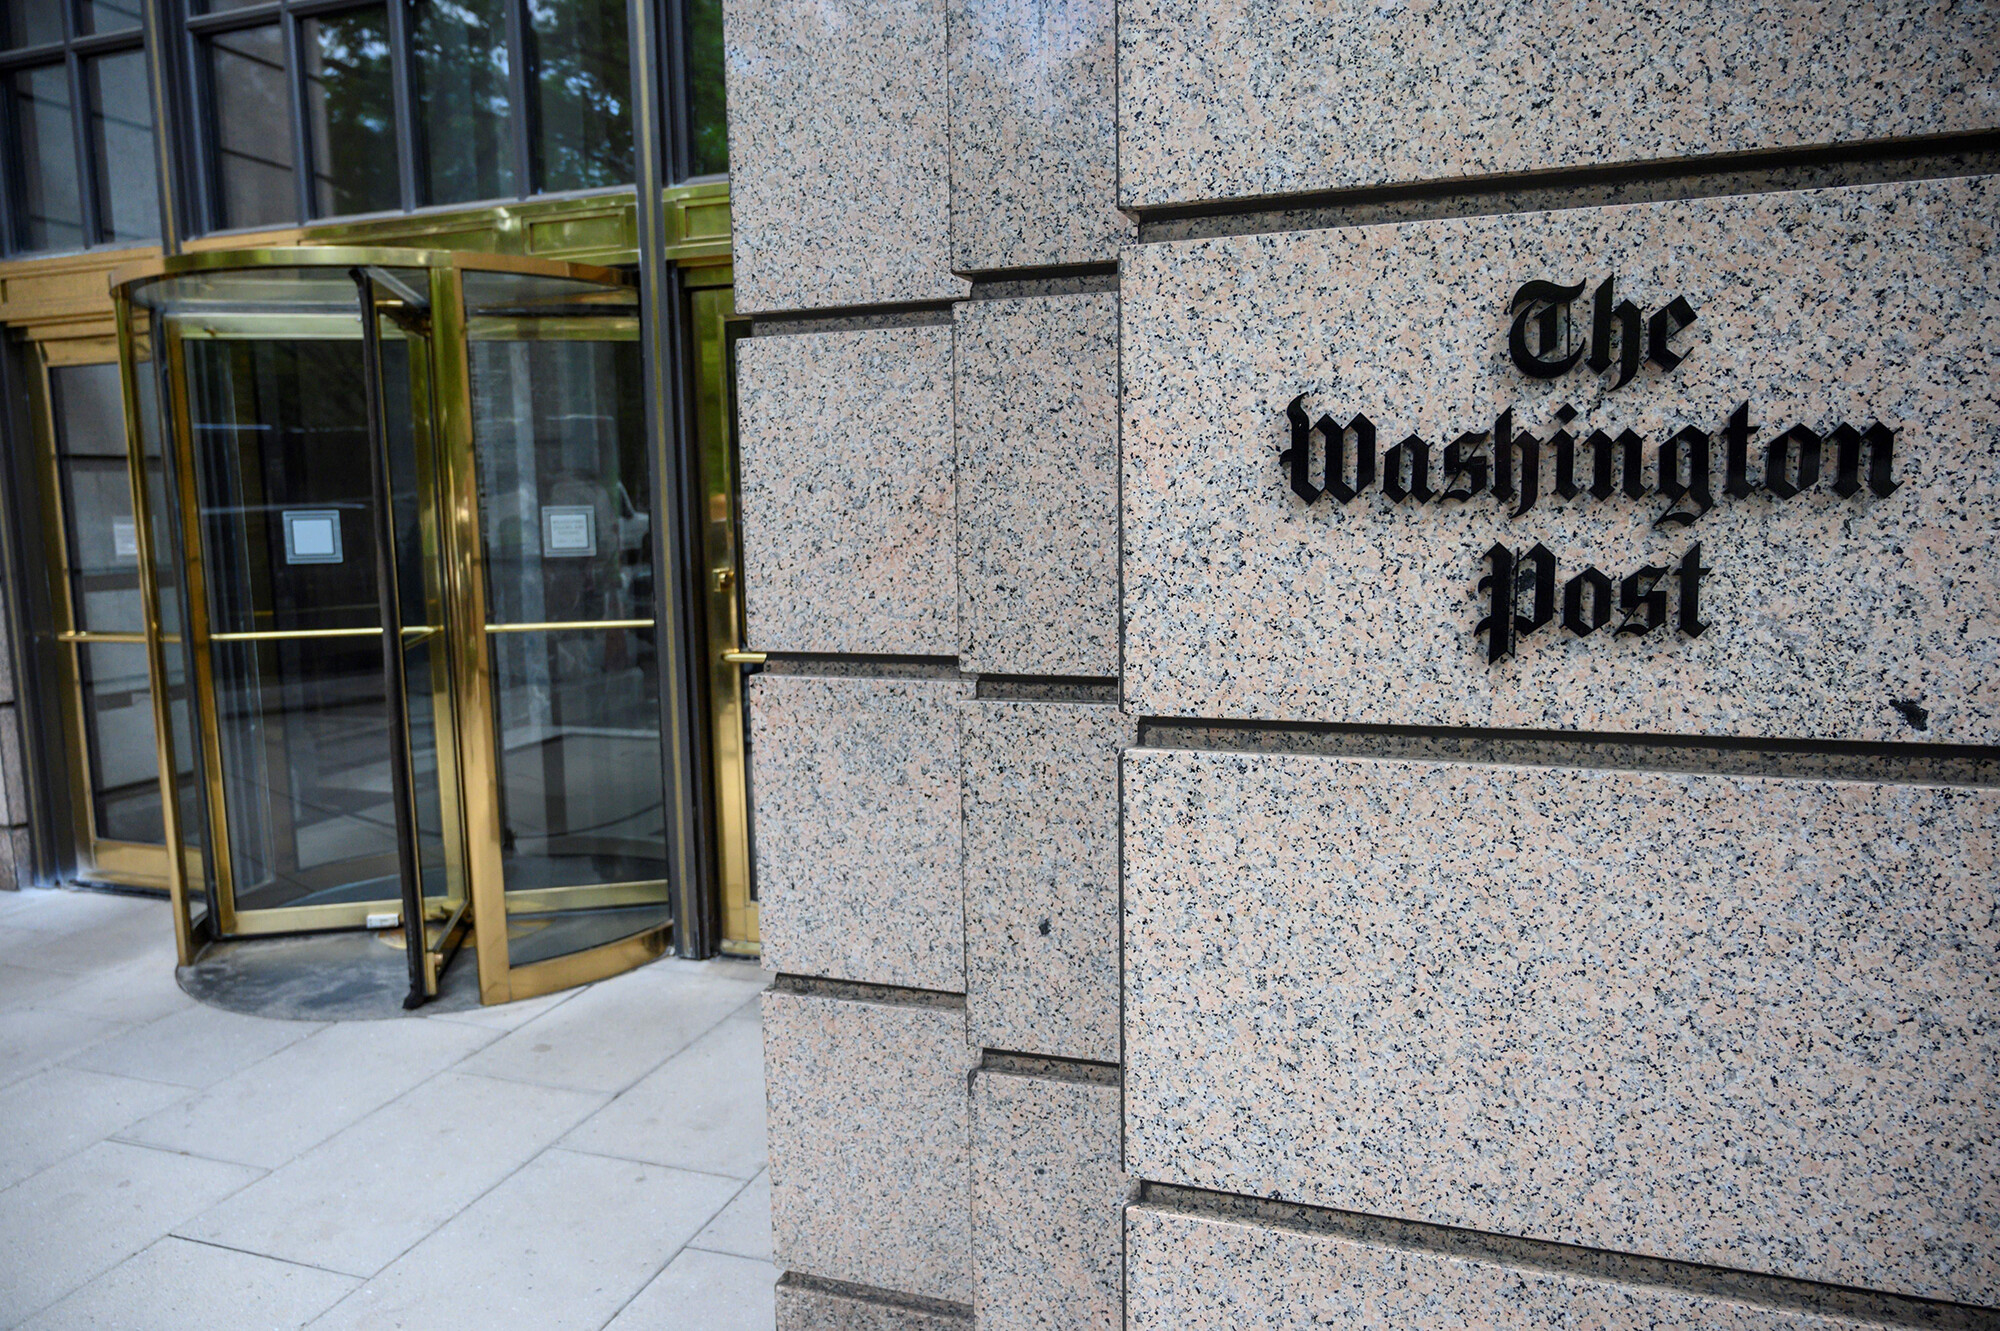 Washington Post columnist apologizes for insulting Indian cuisine in a piece about food he won't eat